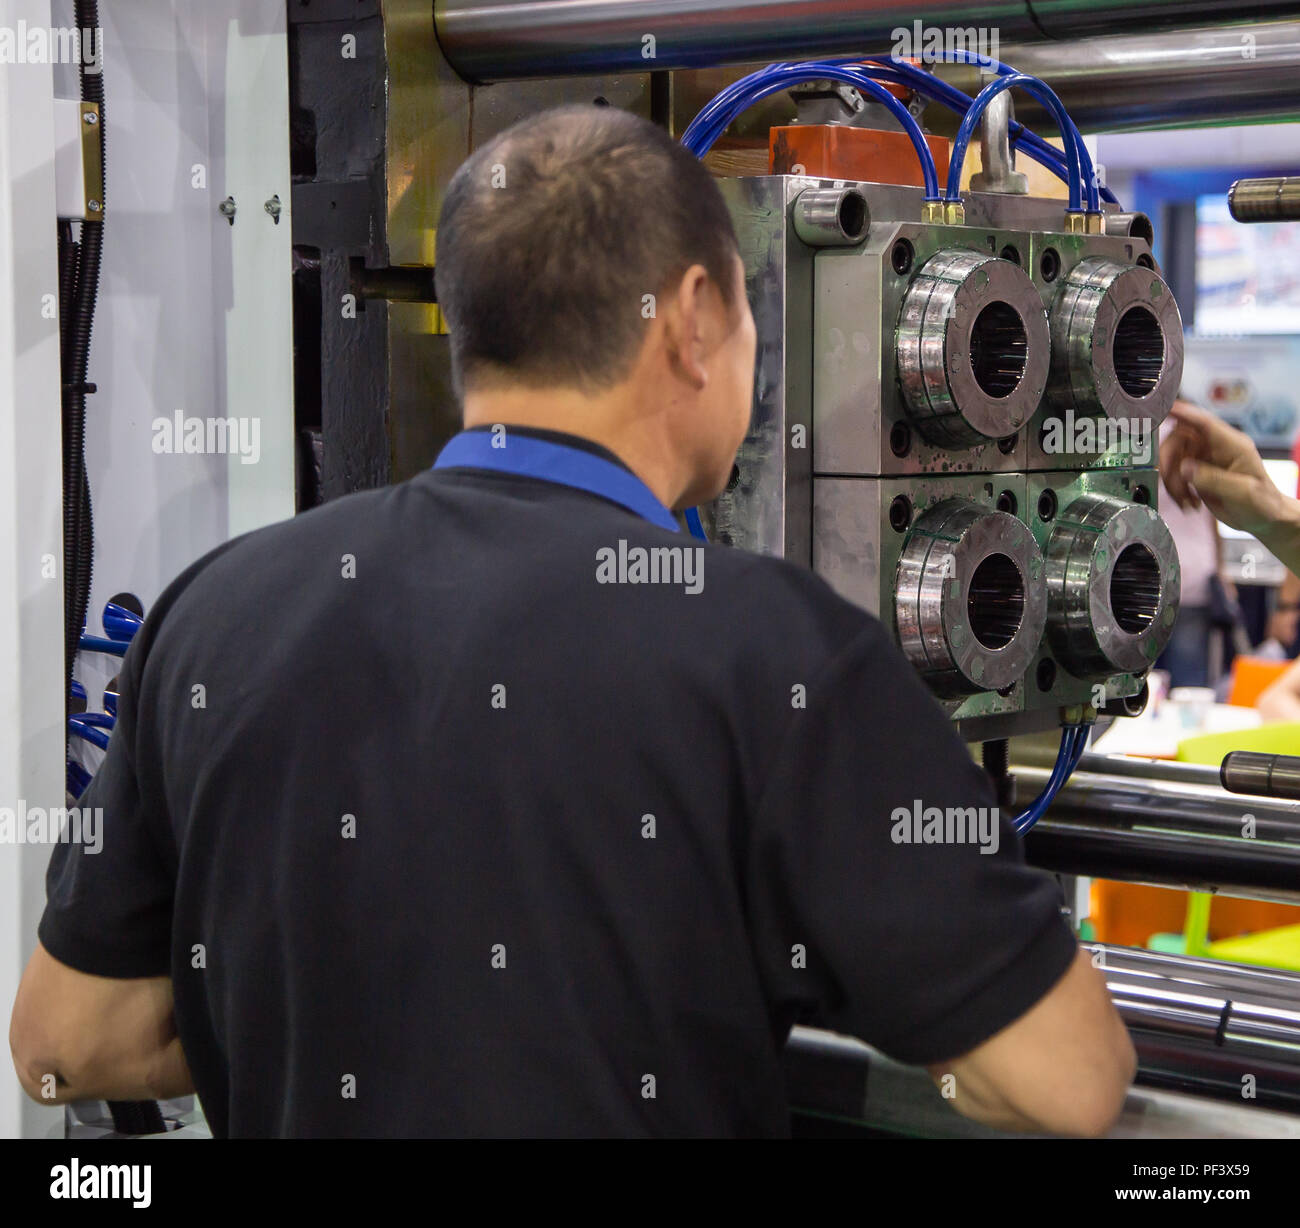 worker setting up industrial plastic injection molding press machine for manufacturing - Stock Image